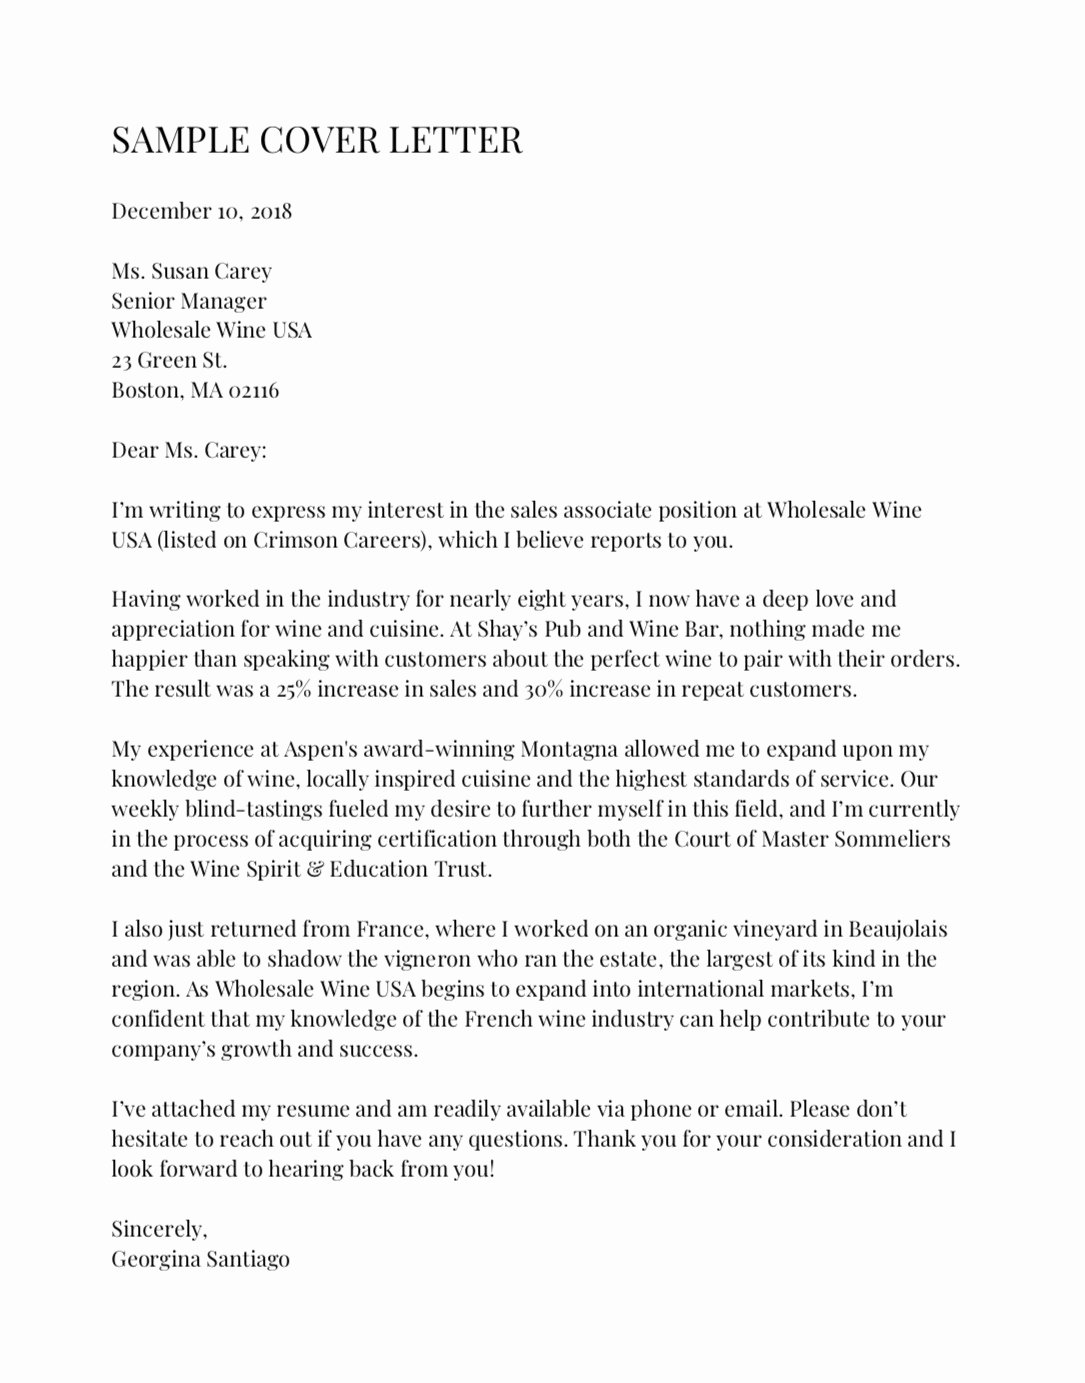 Cover Letter for New Career Lovely Here S An Example Of the Perfect Cover Letter According